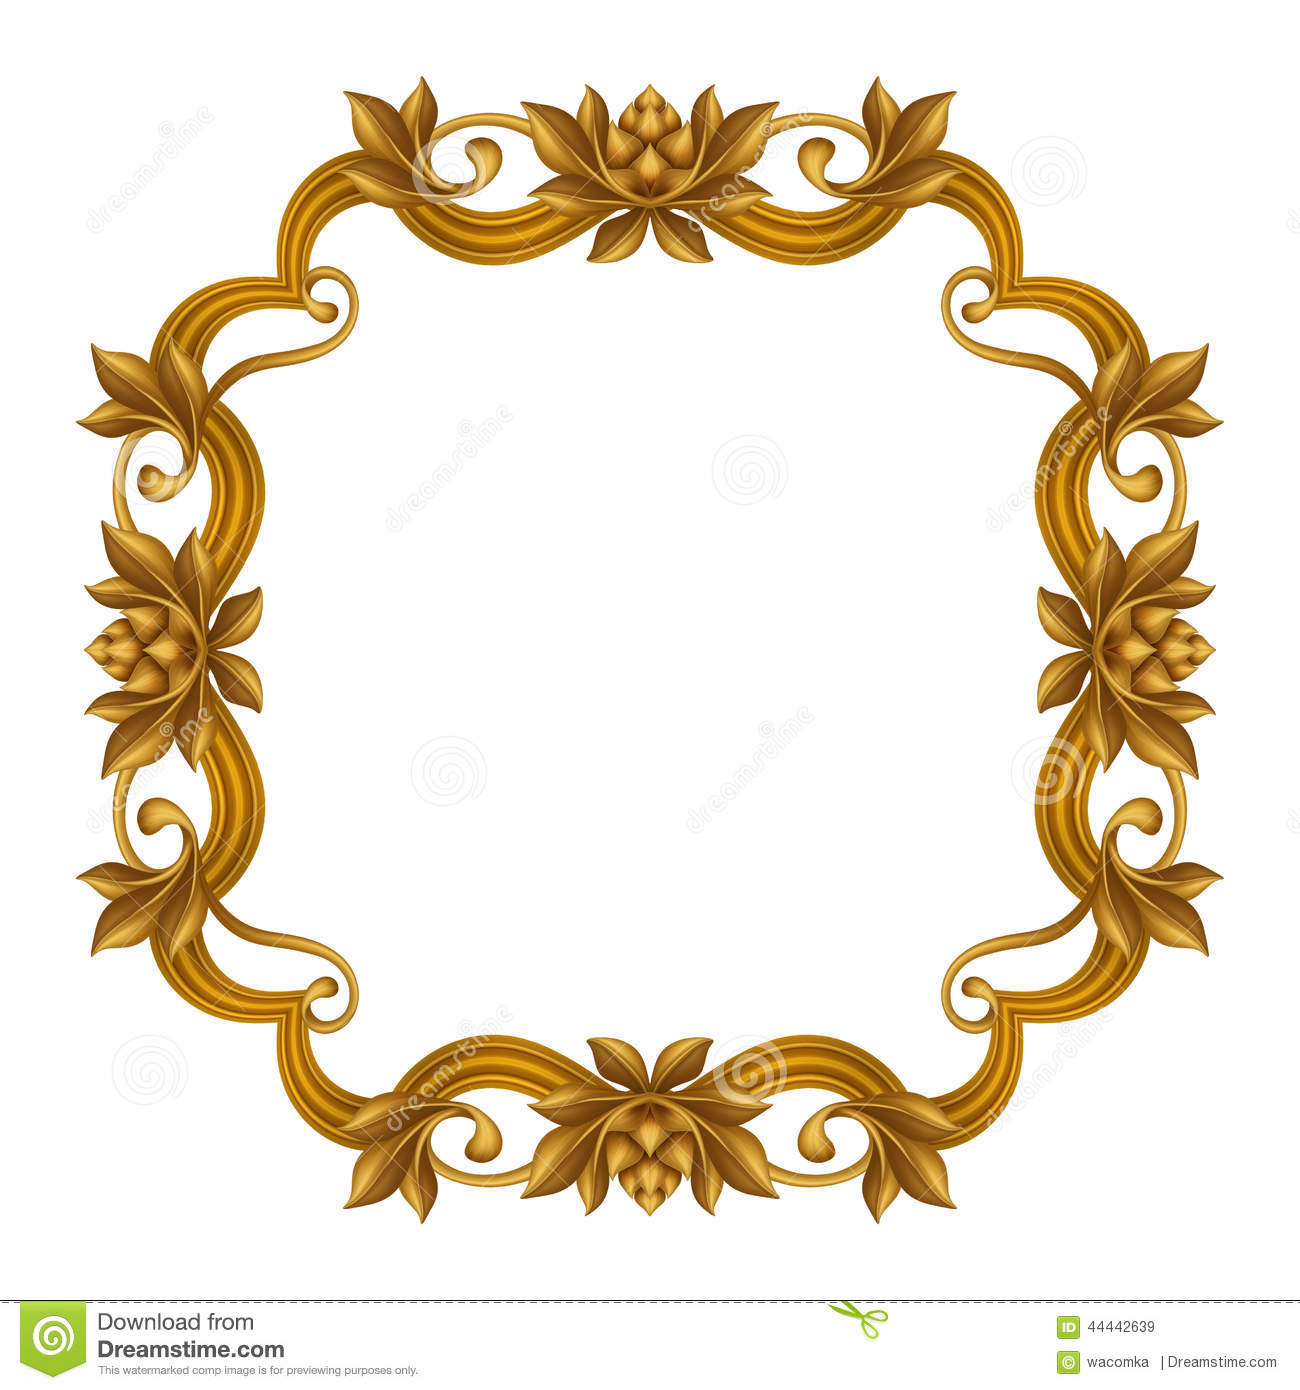 Decorative Gold Vintage Frame Isolated On White Background, Festive ...